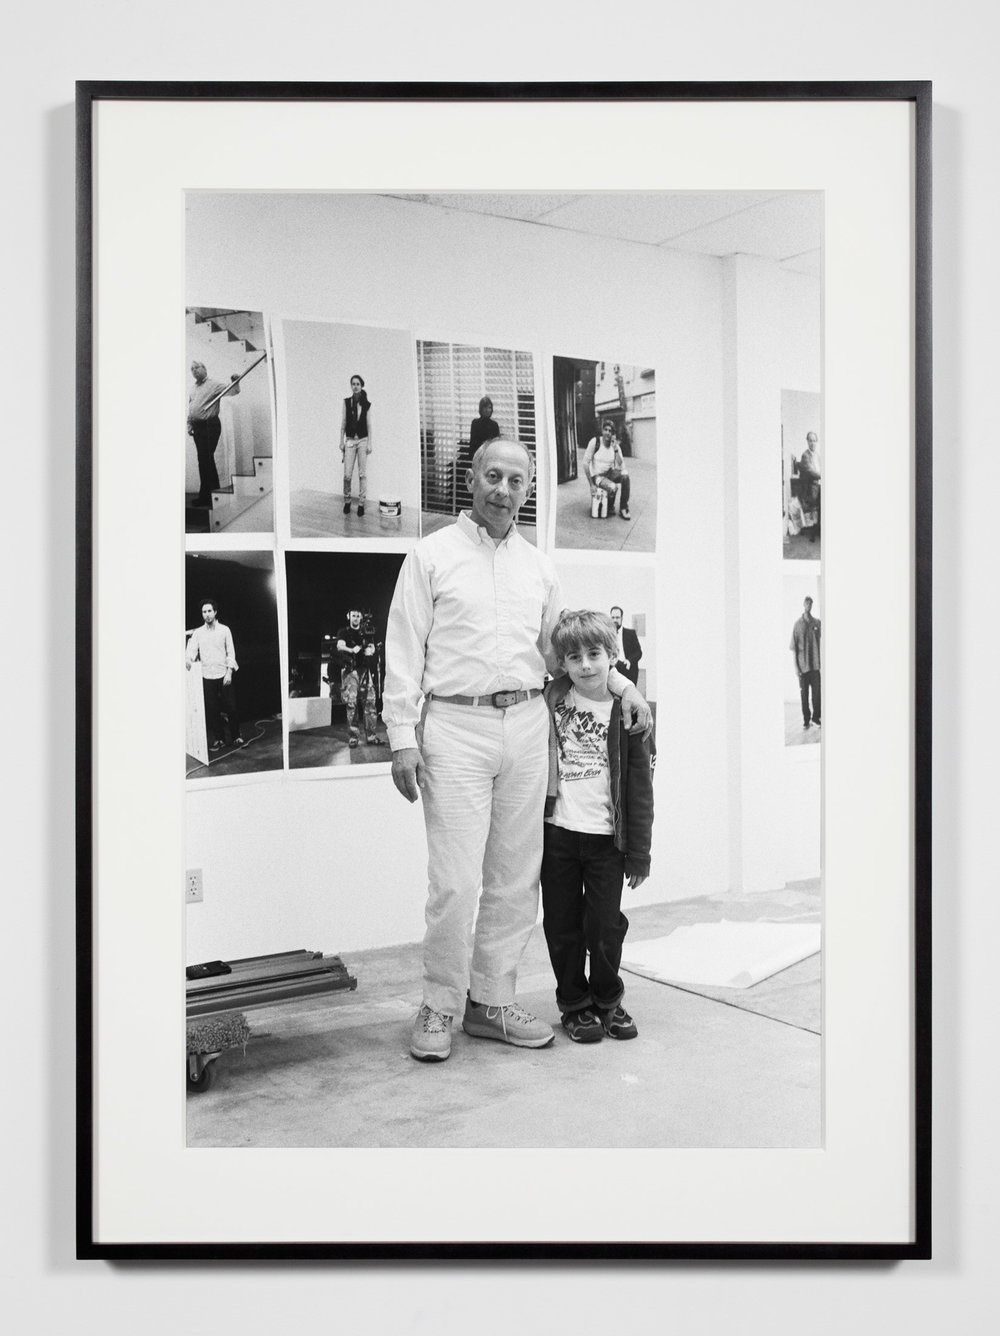 Publisher with Son, Los Angeles, California, April 3, 2009   2011  Epson Ultrachrome K3 archival ink jet print on Hahnemühle Photo Rag paper  36 3/8 x 26 3/8 inches   Industrial Portraits, 2008–    A Diagram of Forces, 2011